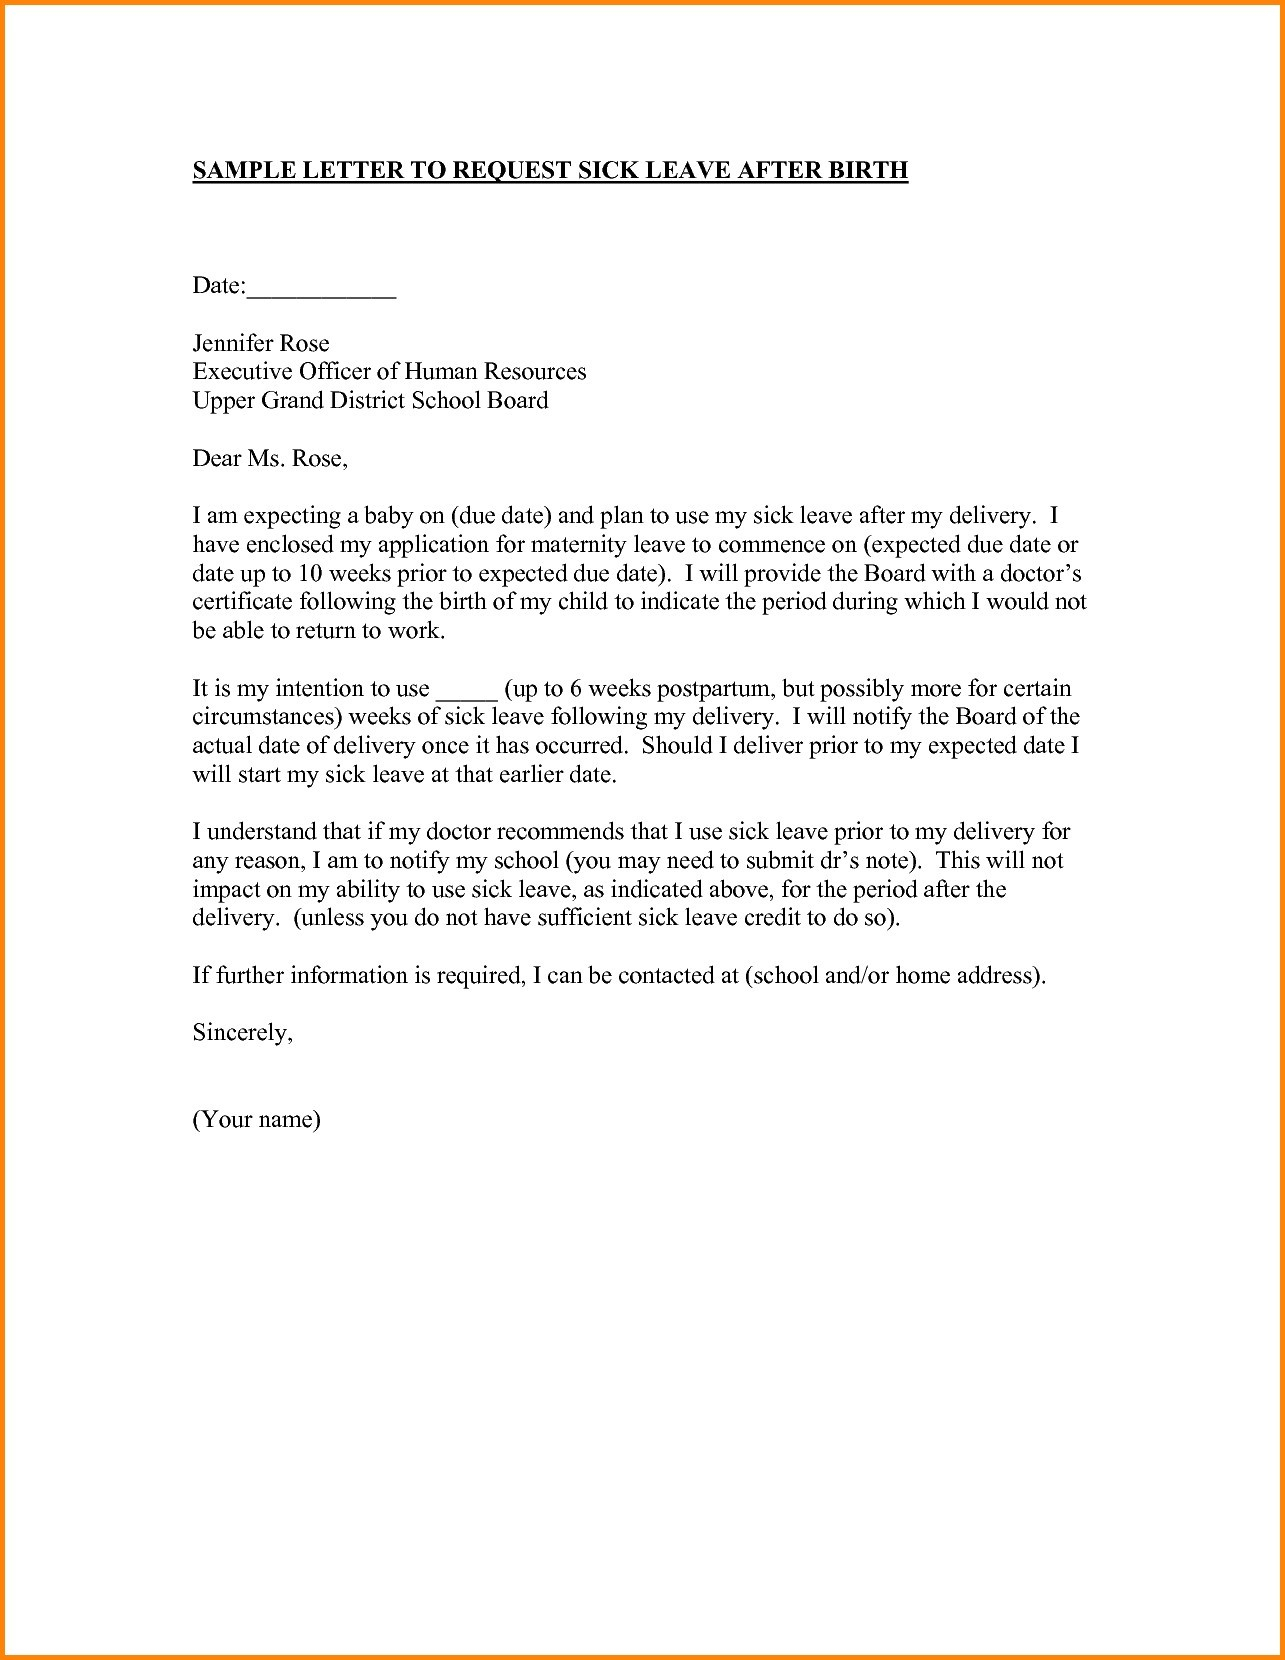 Maternity Return to Work Letter From Employer Template - Free Example Letter Letter Template Informing Employer Of